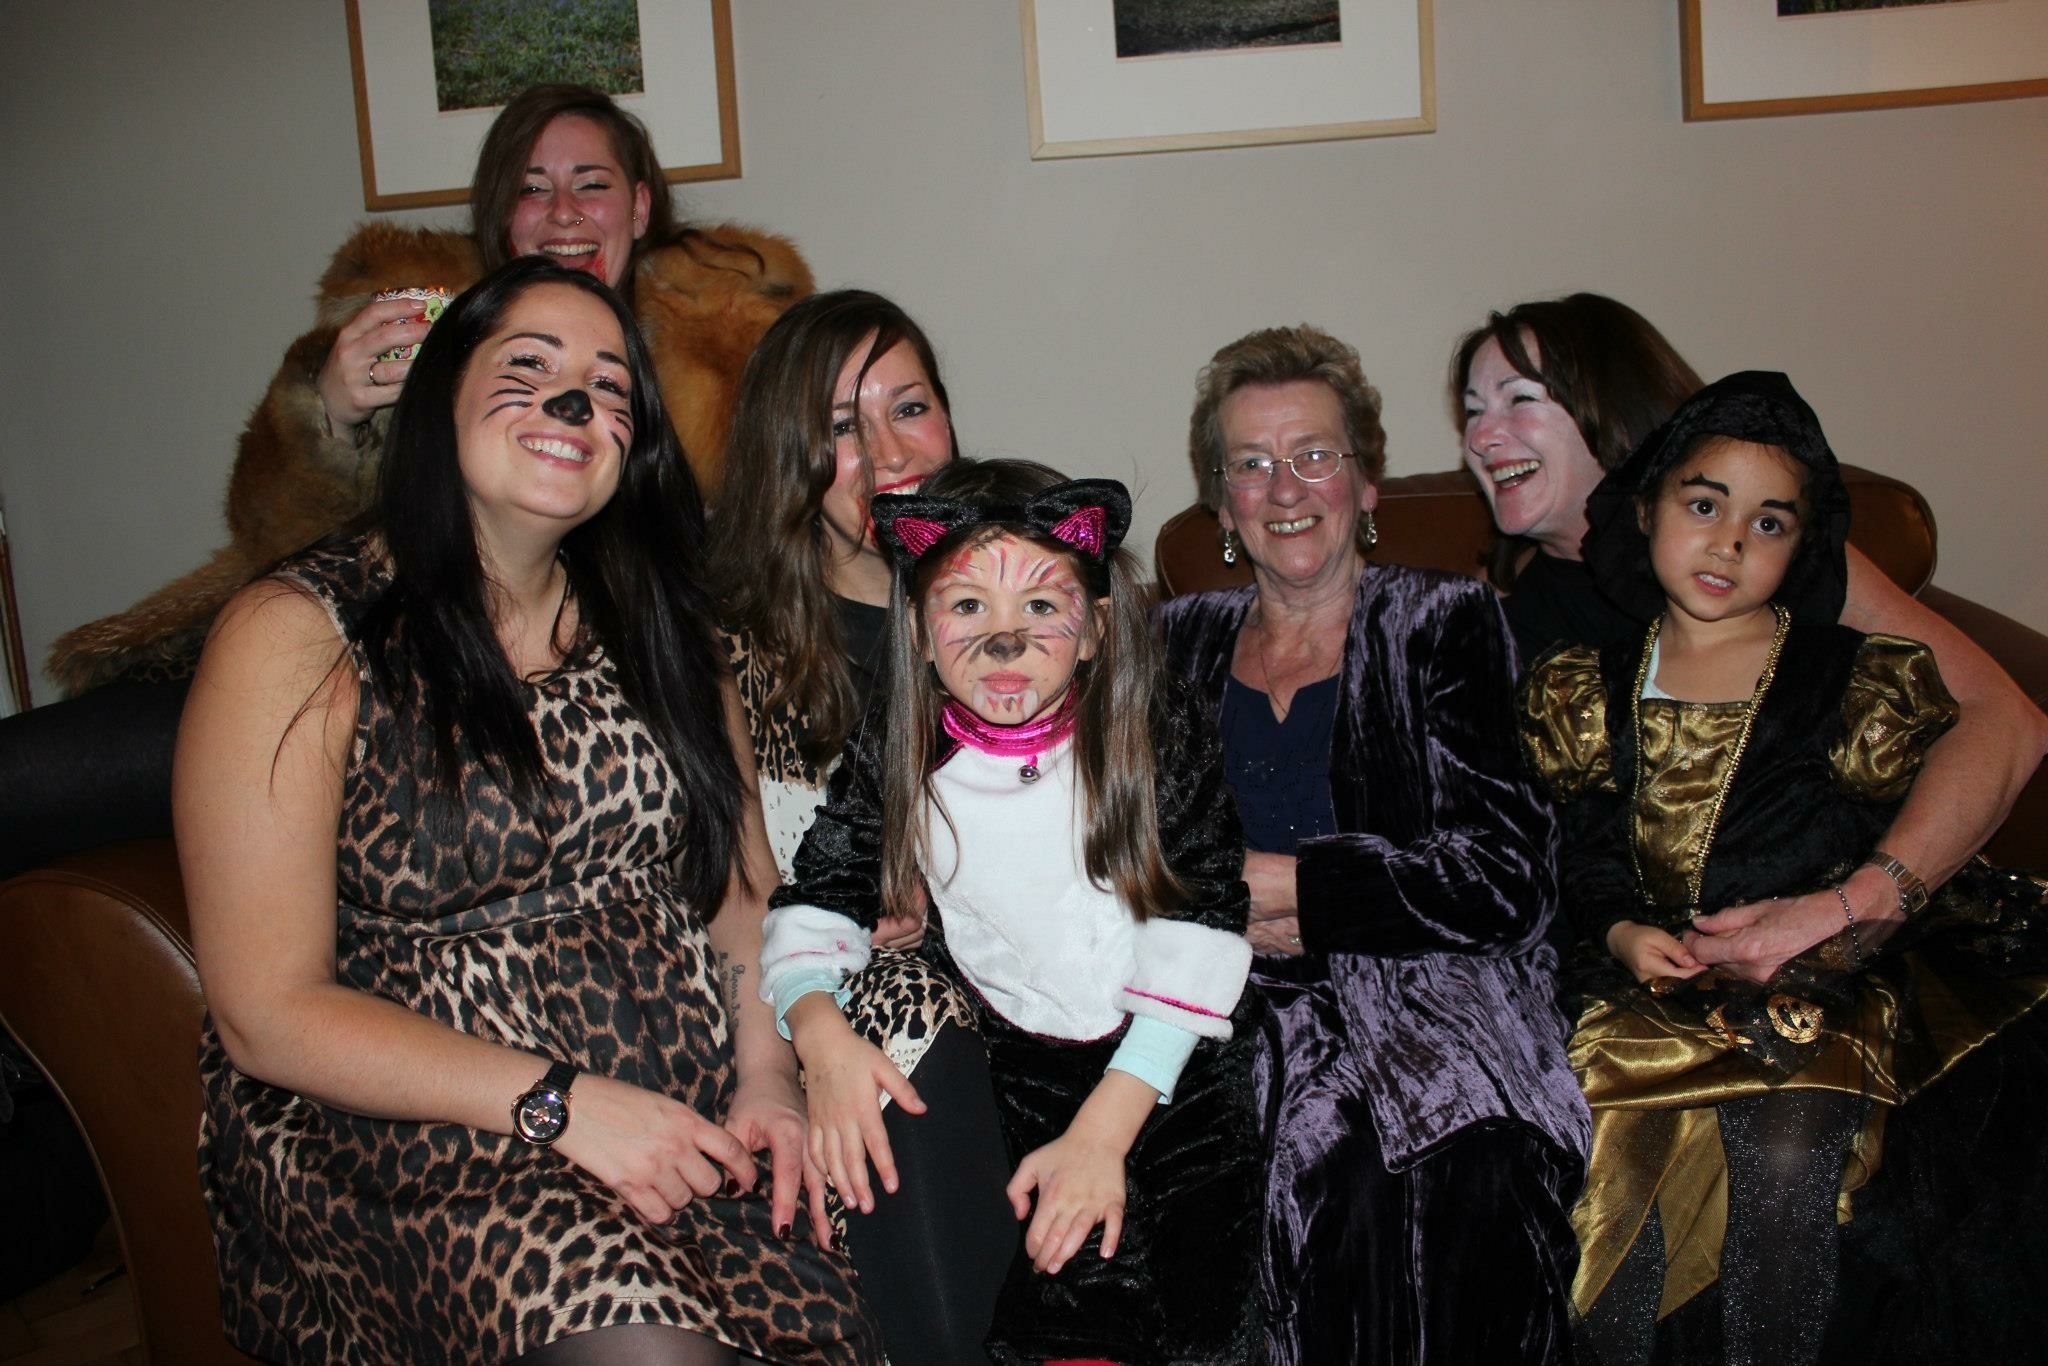 Rita with her cats and witches : )